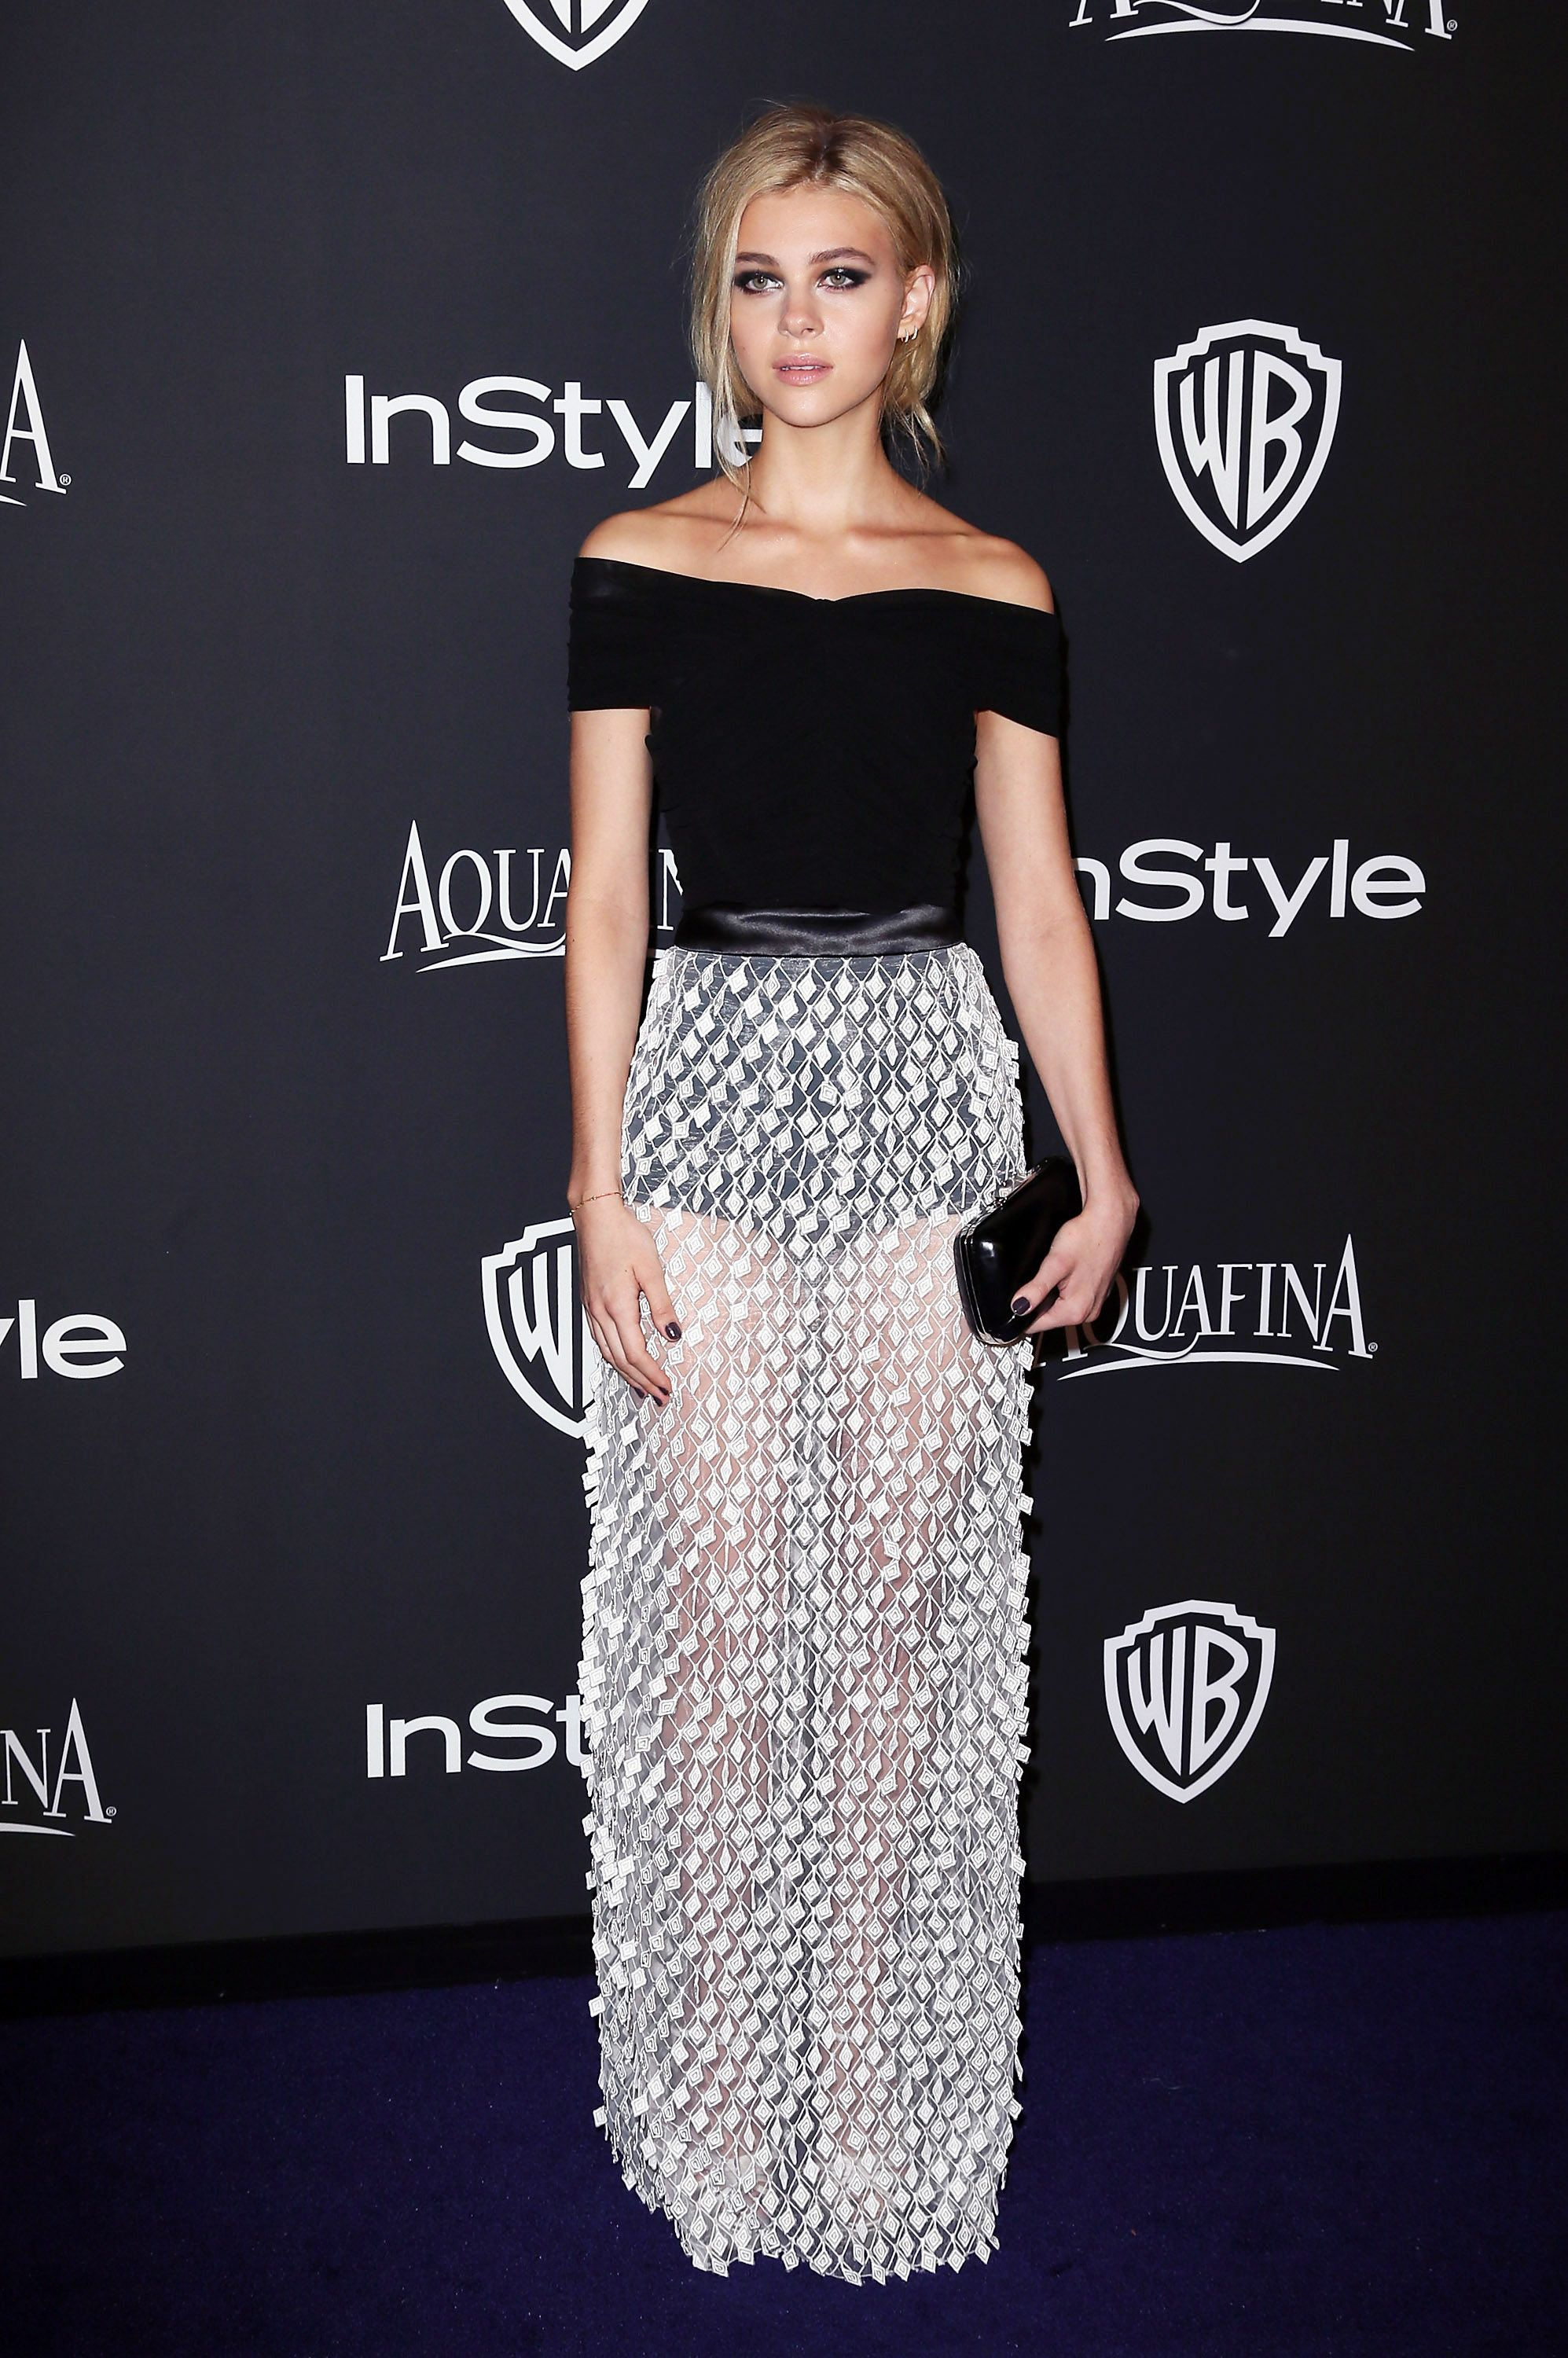 The Golden Globes Weekend Looks You Didn't See The Golden Globes Weekend Looks You Didn't See new picture